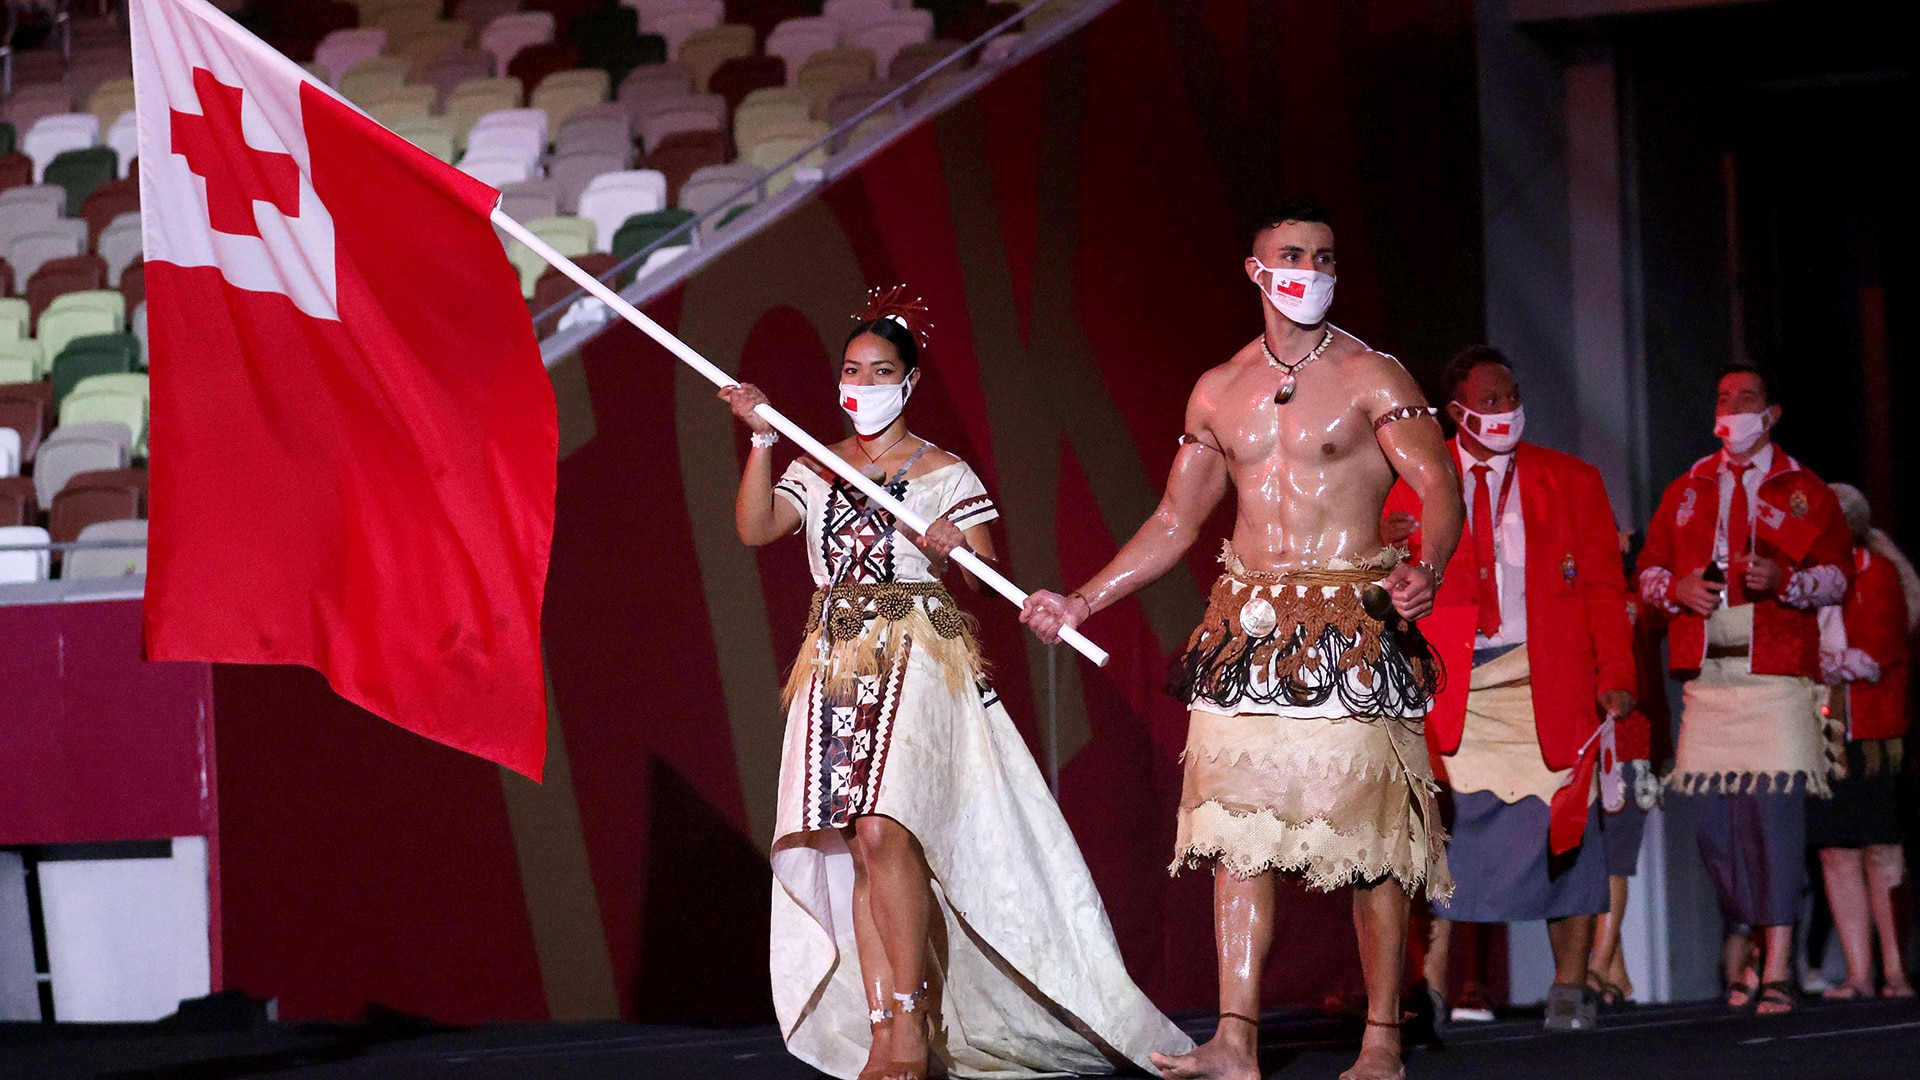 TOKYO, JAPAN - JULY 23: Flag bearers Malia Paseka and Pita Taufatofua of Team Tonga lead their team out during the Opening Ceremony of the Tokyo 2020 Olympic Games at Olympic Stadium on July 23, 2021 in Tokyo, Japan.